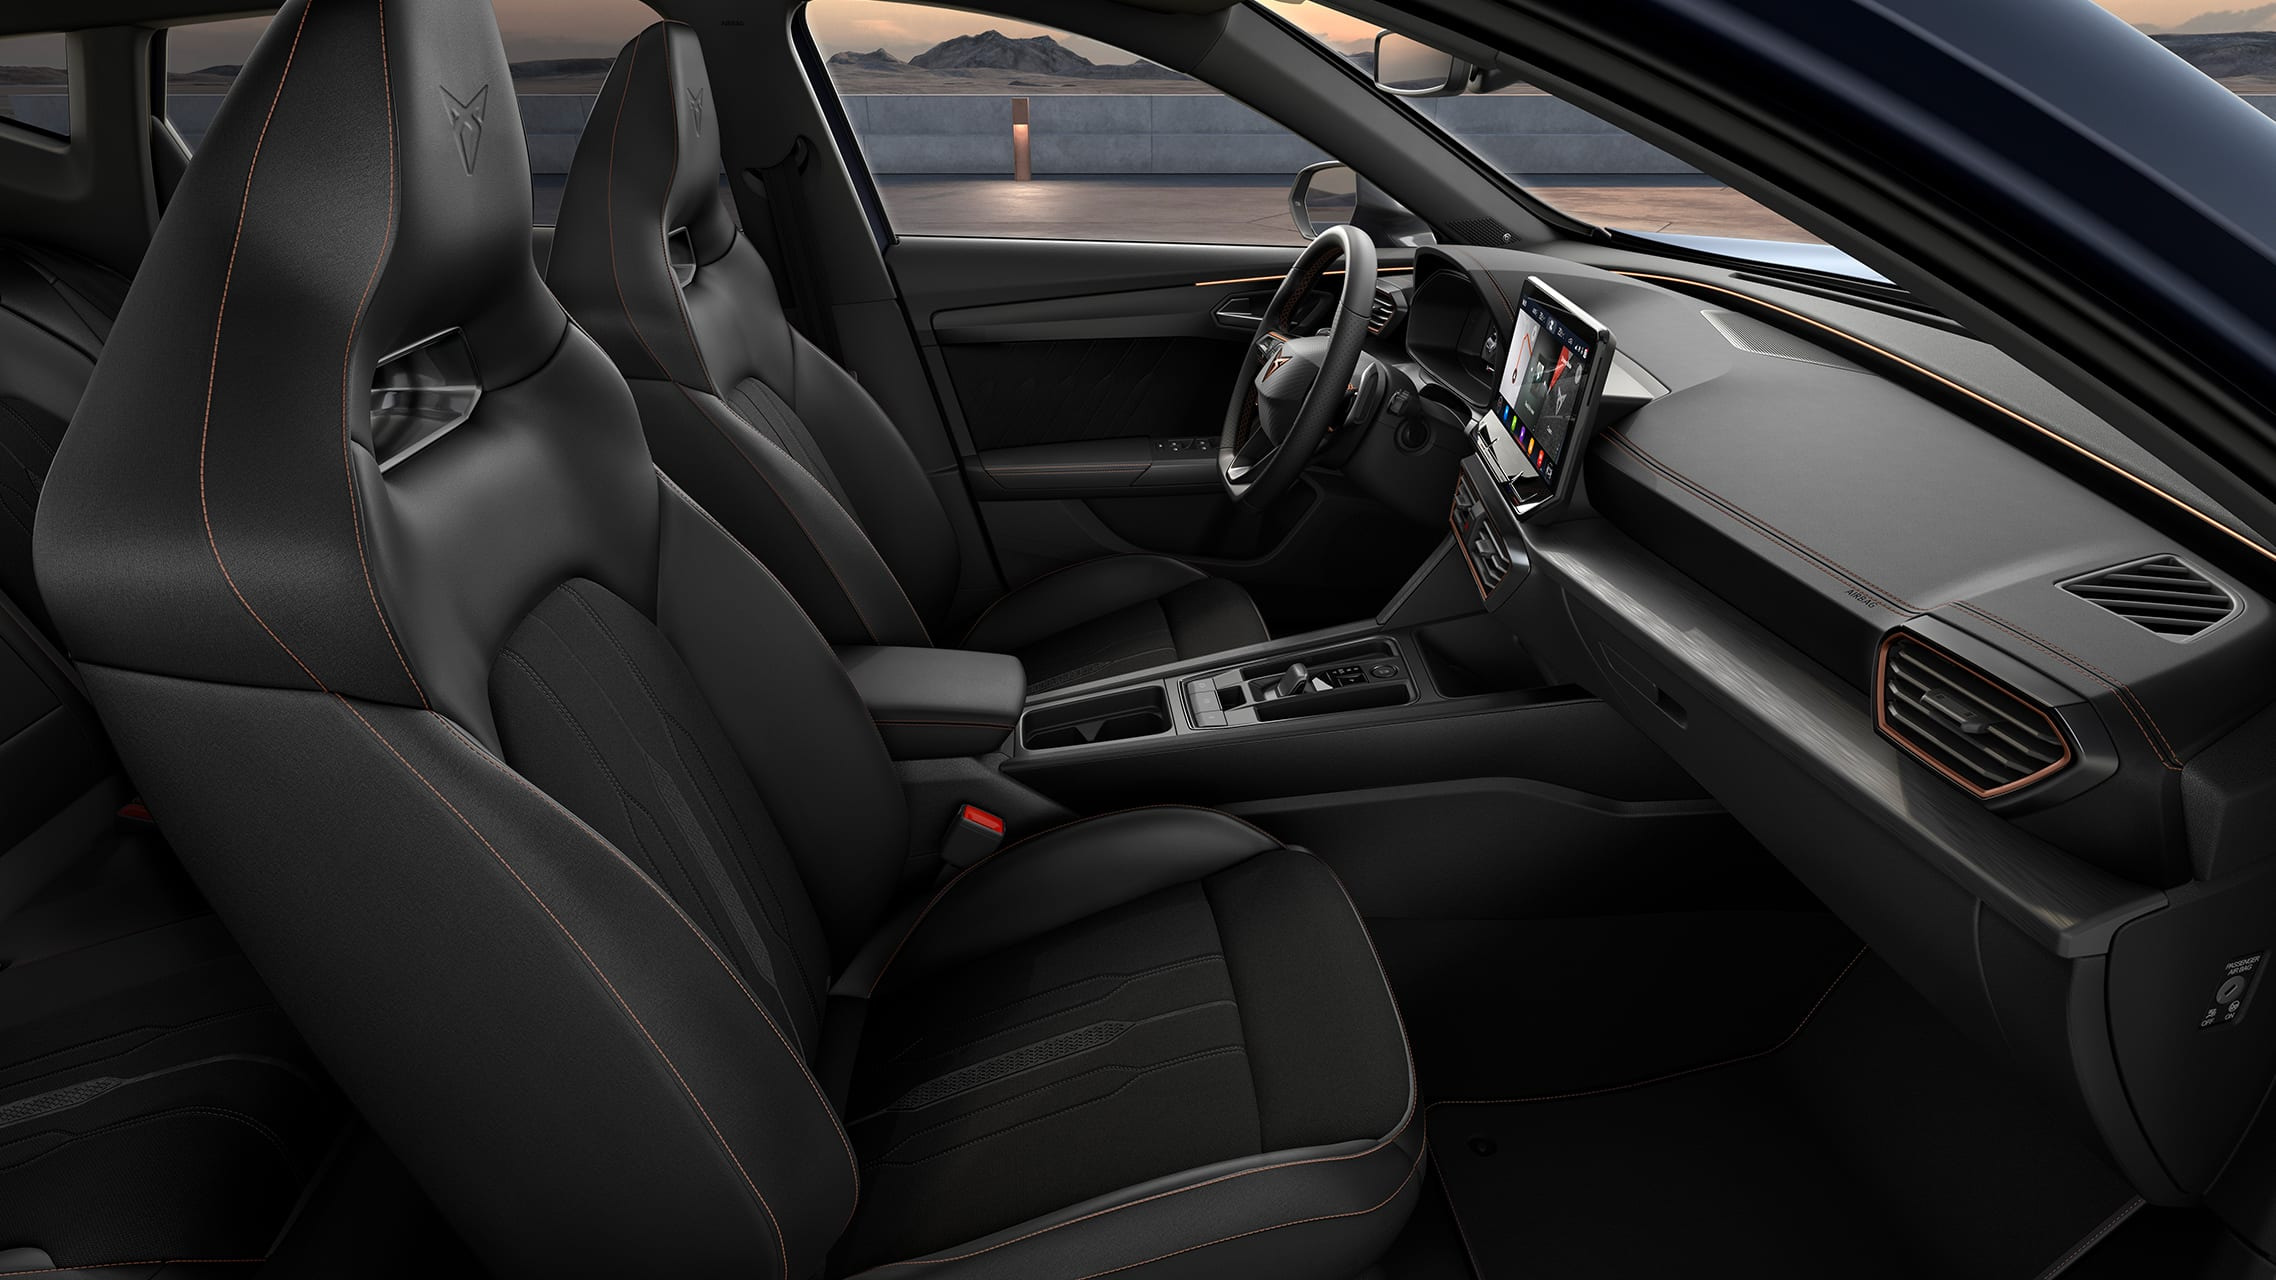 new cupra formentor interior with textile seats in black